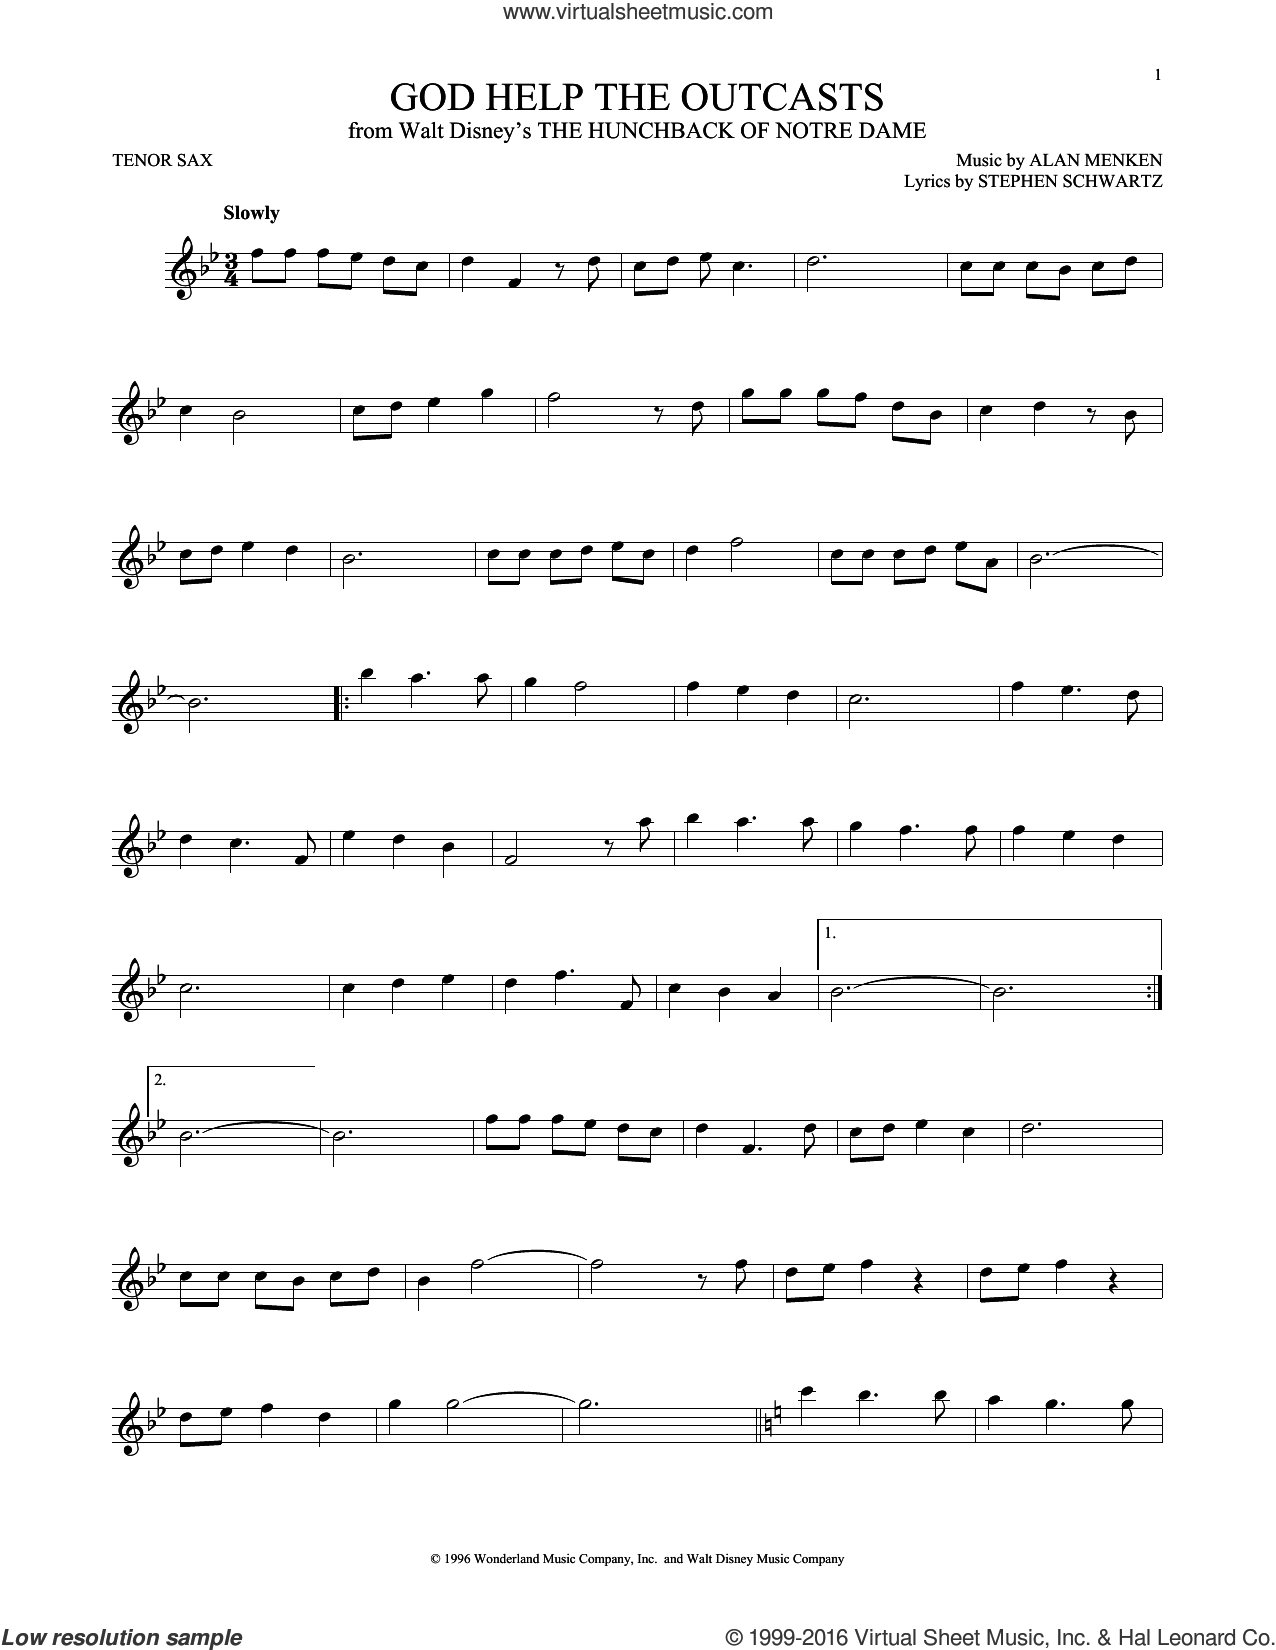 God Help The Outcasts sheet music for tenor saxophone solo by Bette Midler, Alan Menken and Stephen Schwartz, intermediate skill level